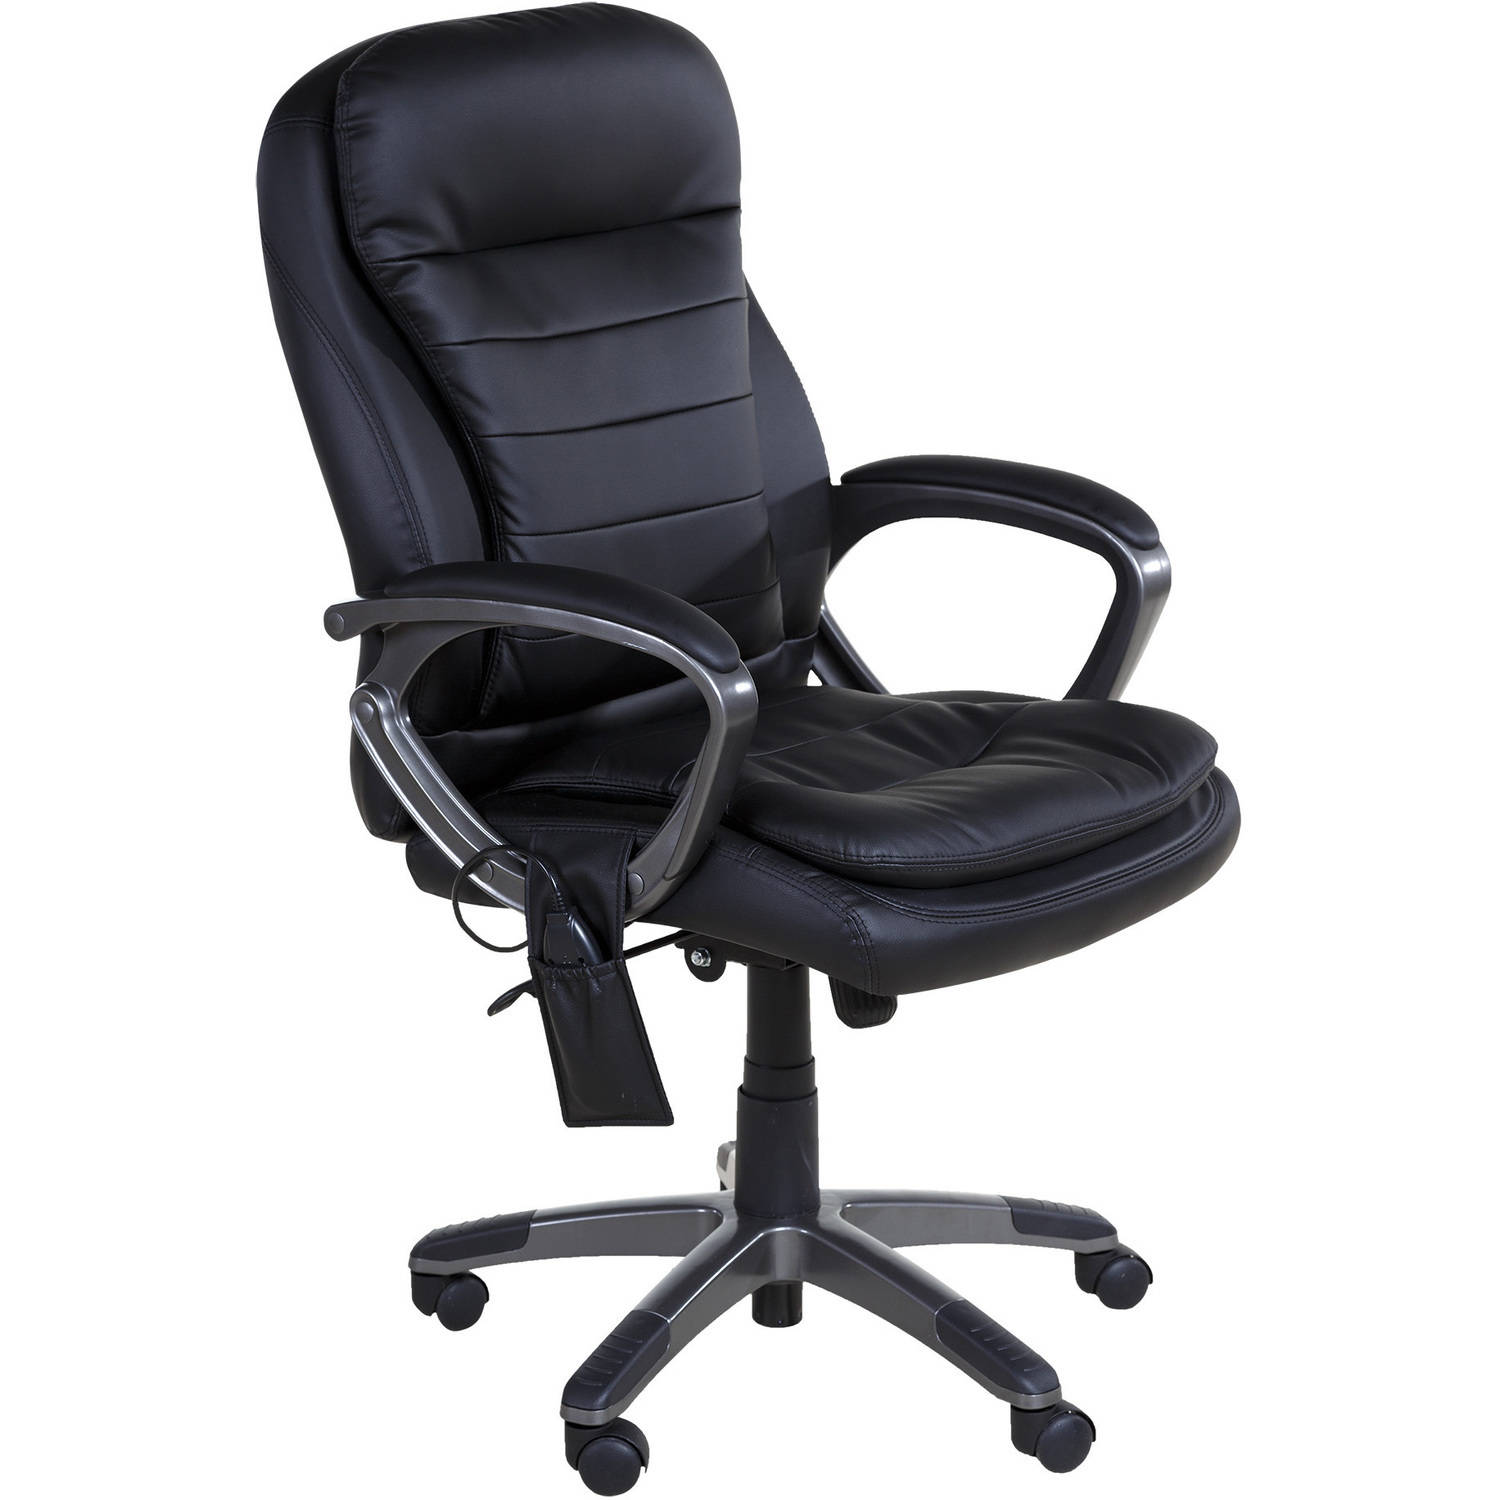 Comfort Products Leather Executive Pillow Top Chair with Heat and Massage